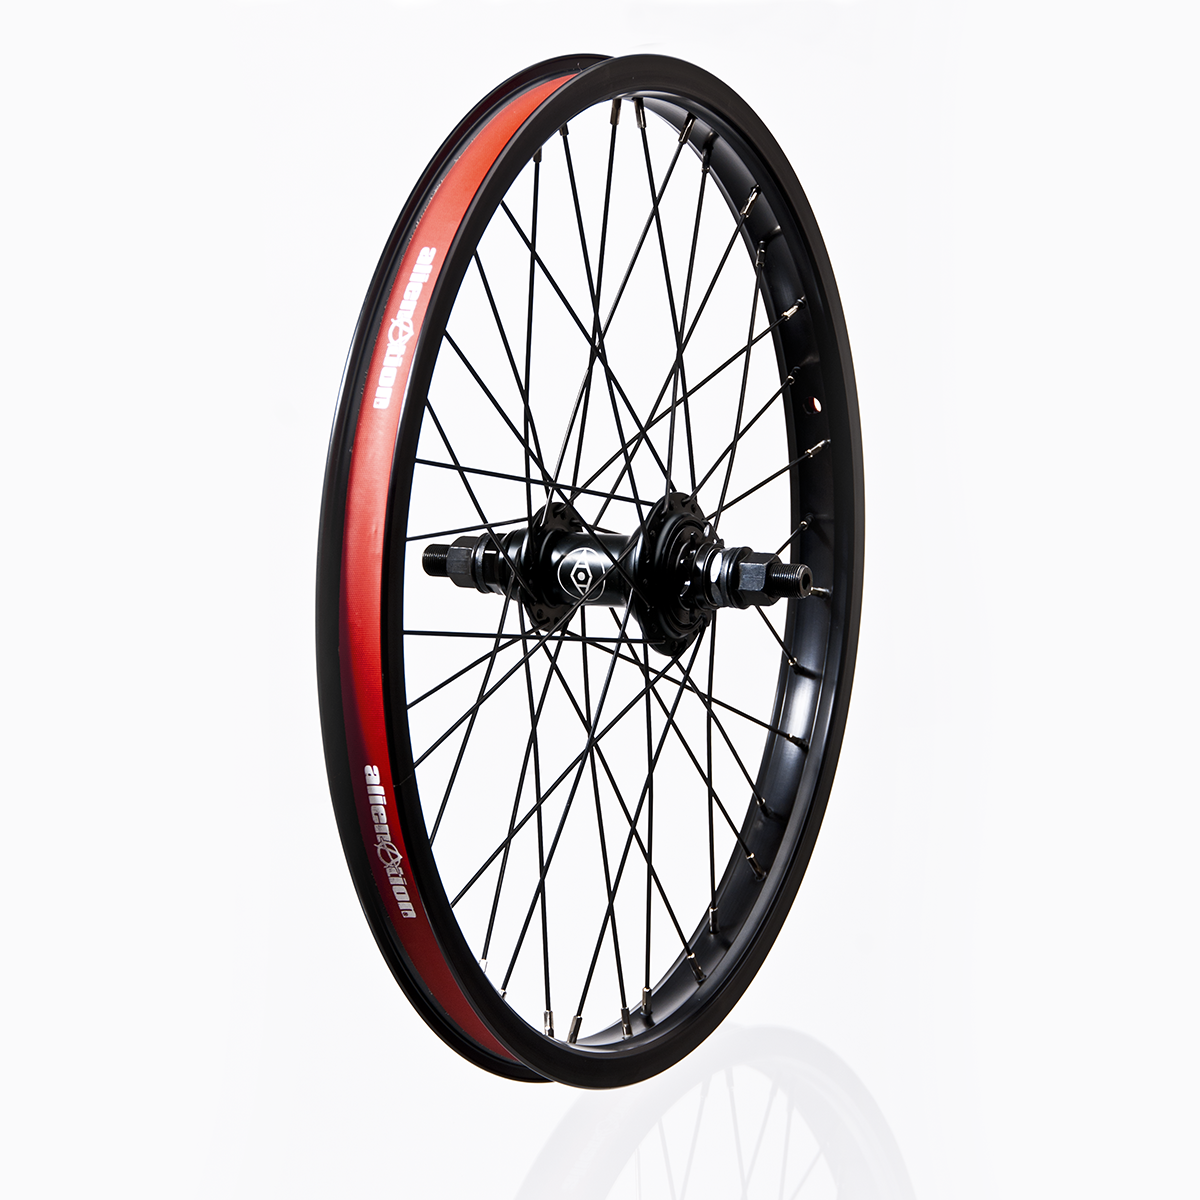 Axal And Wheel : Axis bike wheels bicycling and the best ideas